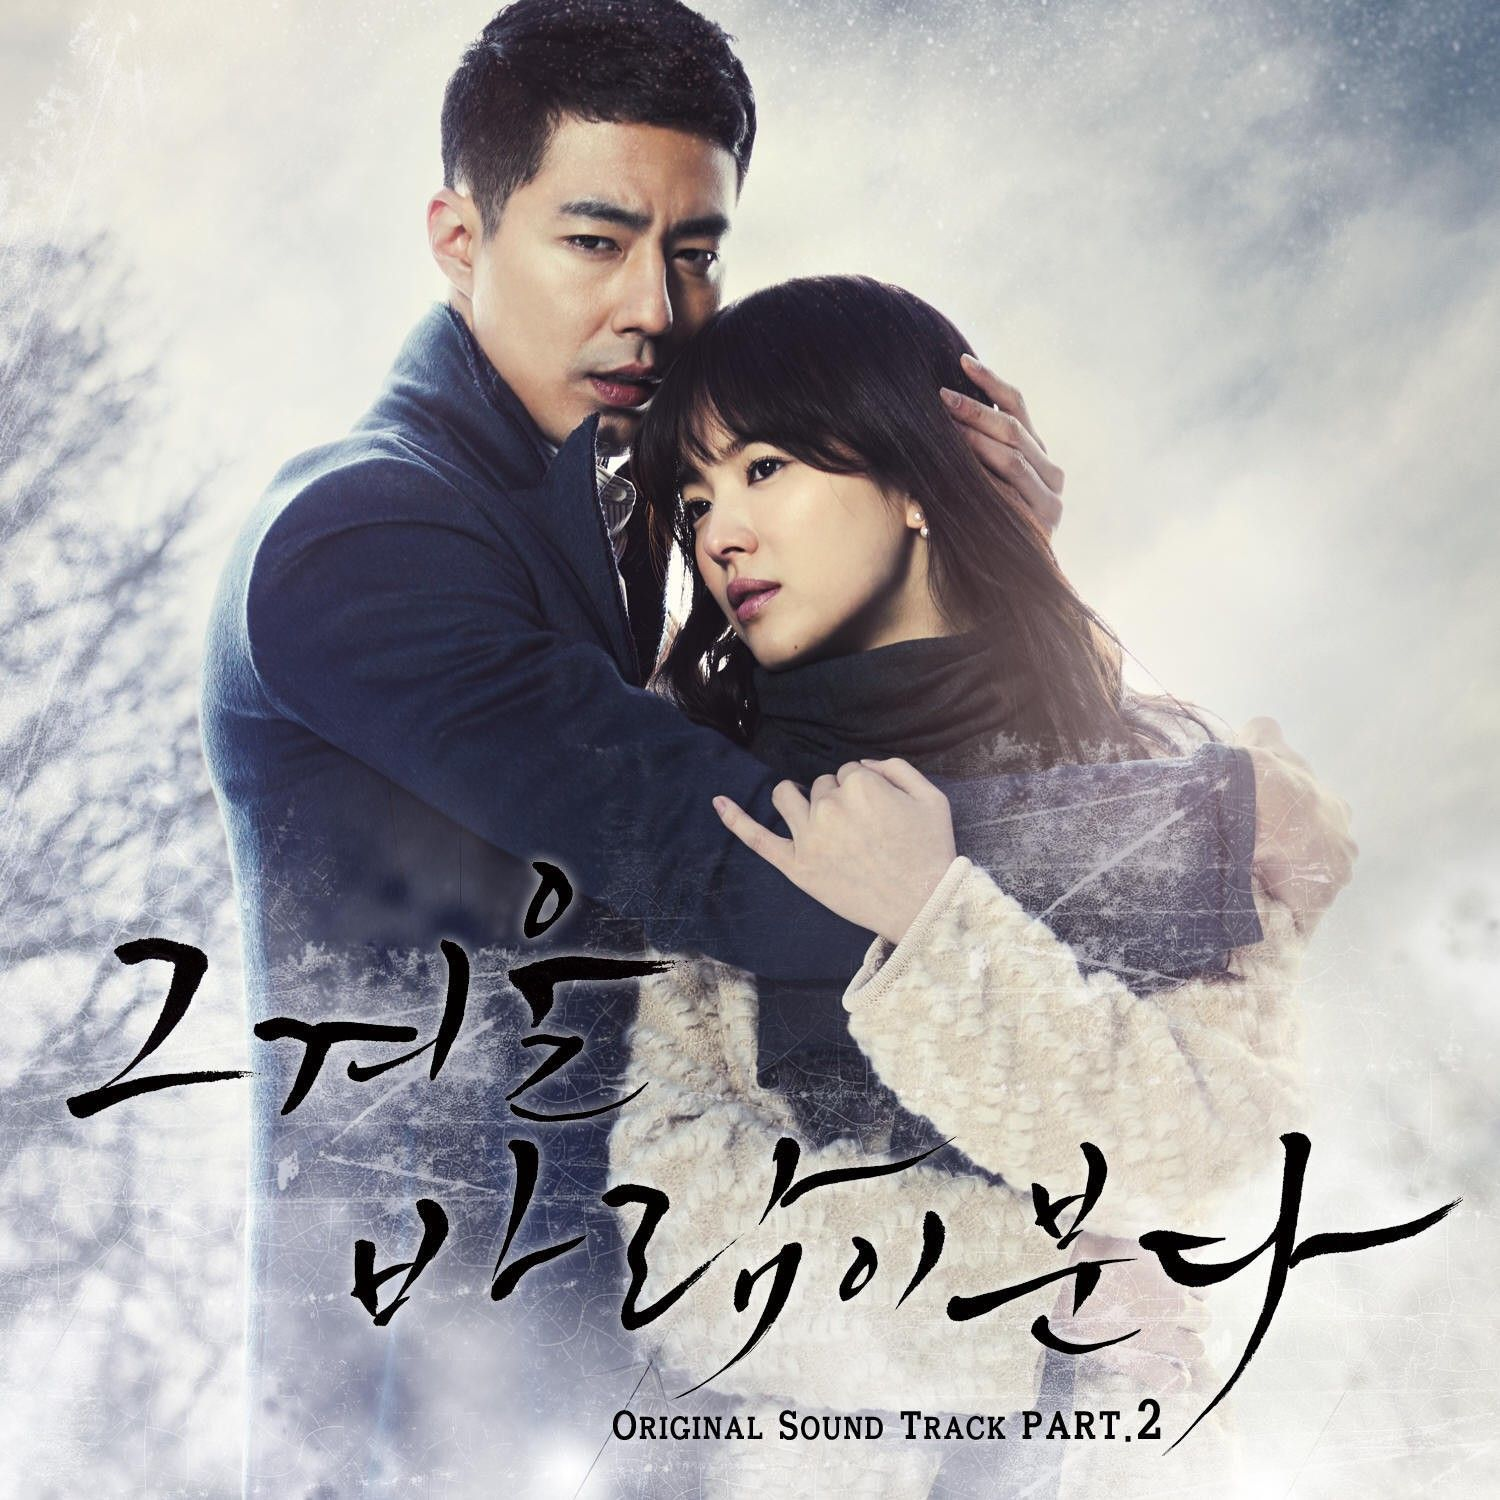 [Single] The One - That Wind, The Winter Blows OST Part.2